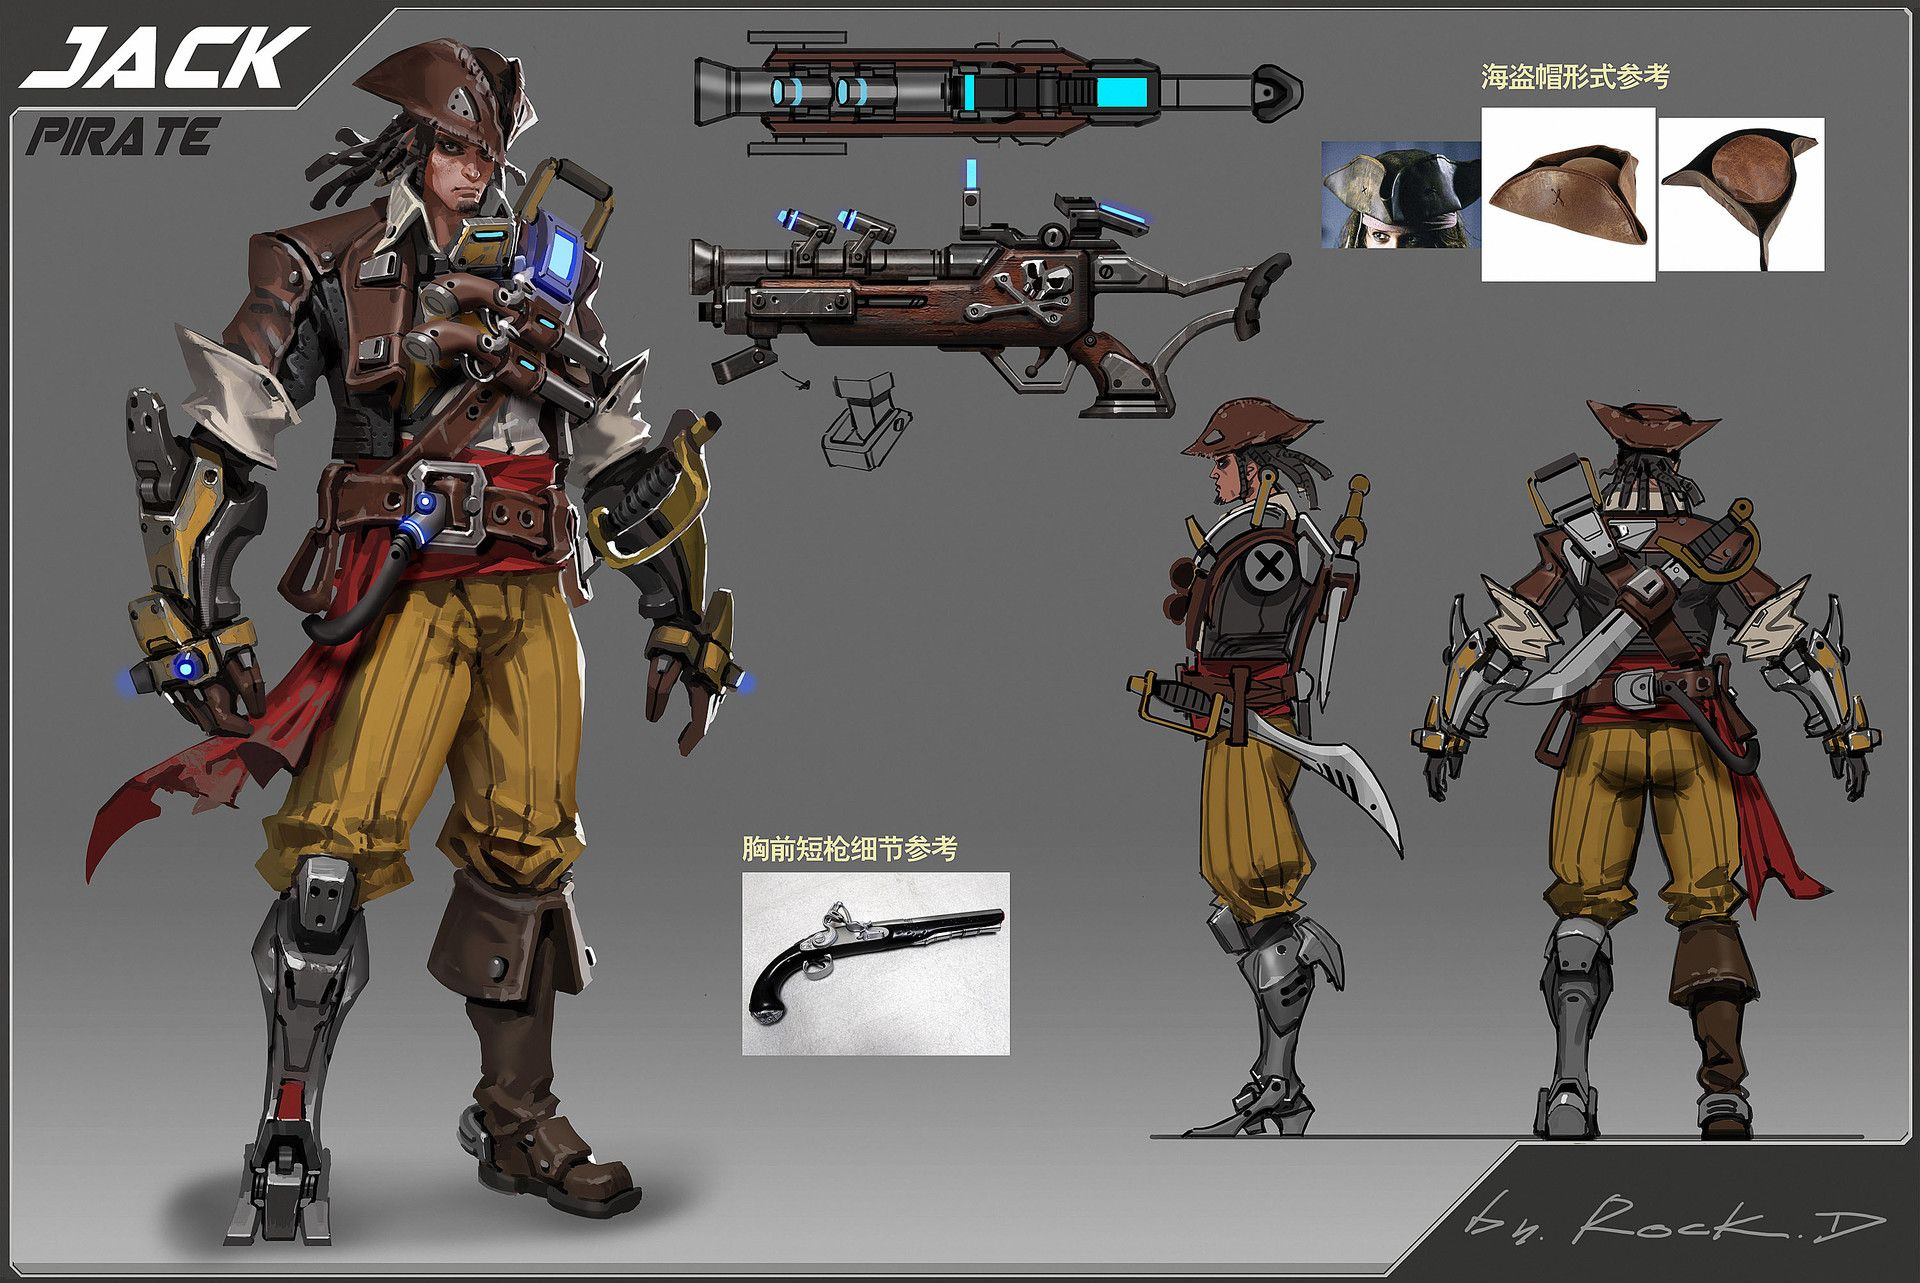 sci-fi pirate concept, Rock D on ArtStation at https://www.artstation.com/artwork/sci-fi-pirate-concept